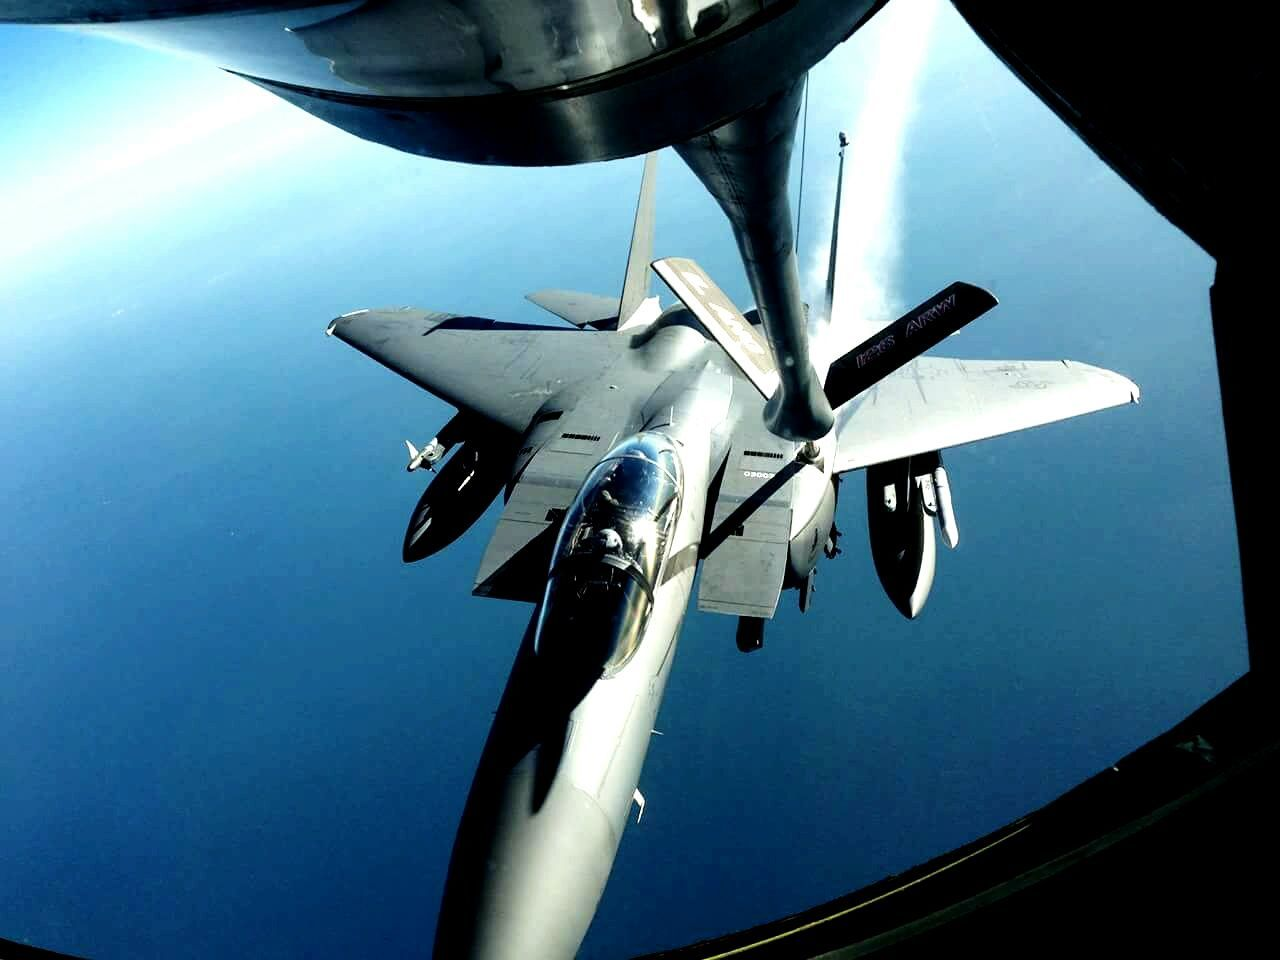 F15E Military Life Air Refuel Fighter Jet Fighterplane Kc135 Tanker Strike Eagle